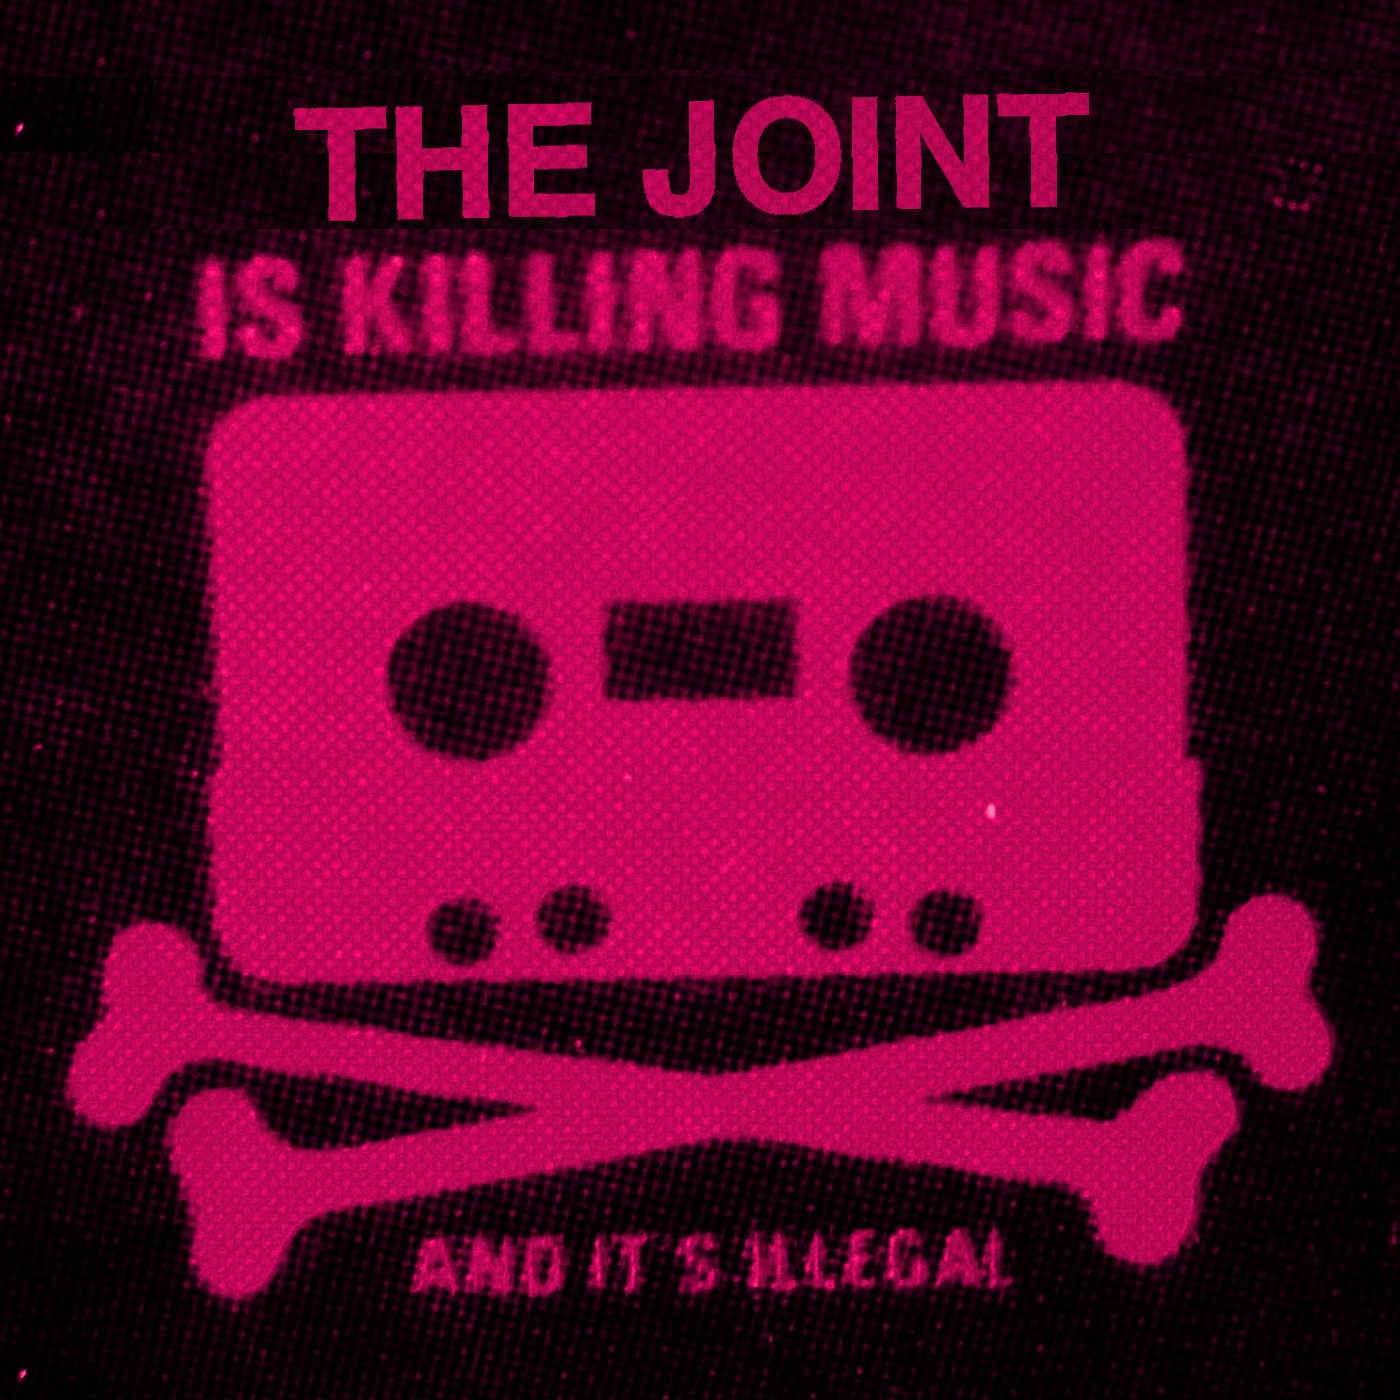 Artwork for The Joint Radio Show - 24th Apr 2010 - First Hour - 12pm-1pm - m4a/aac